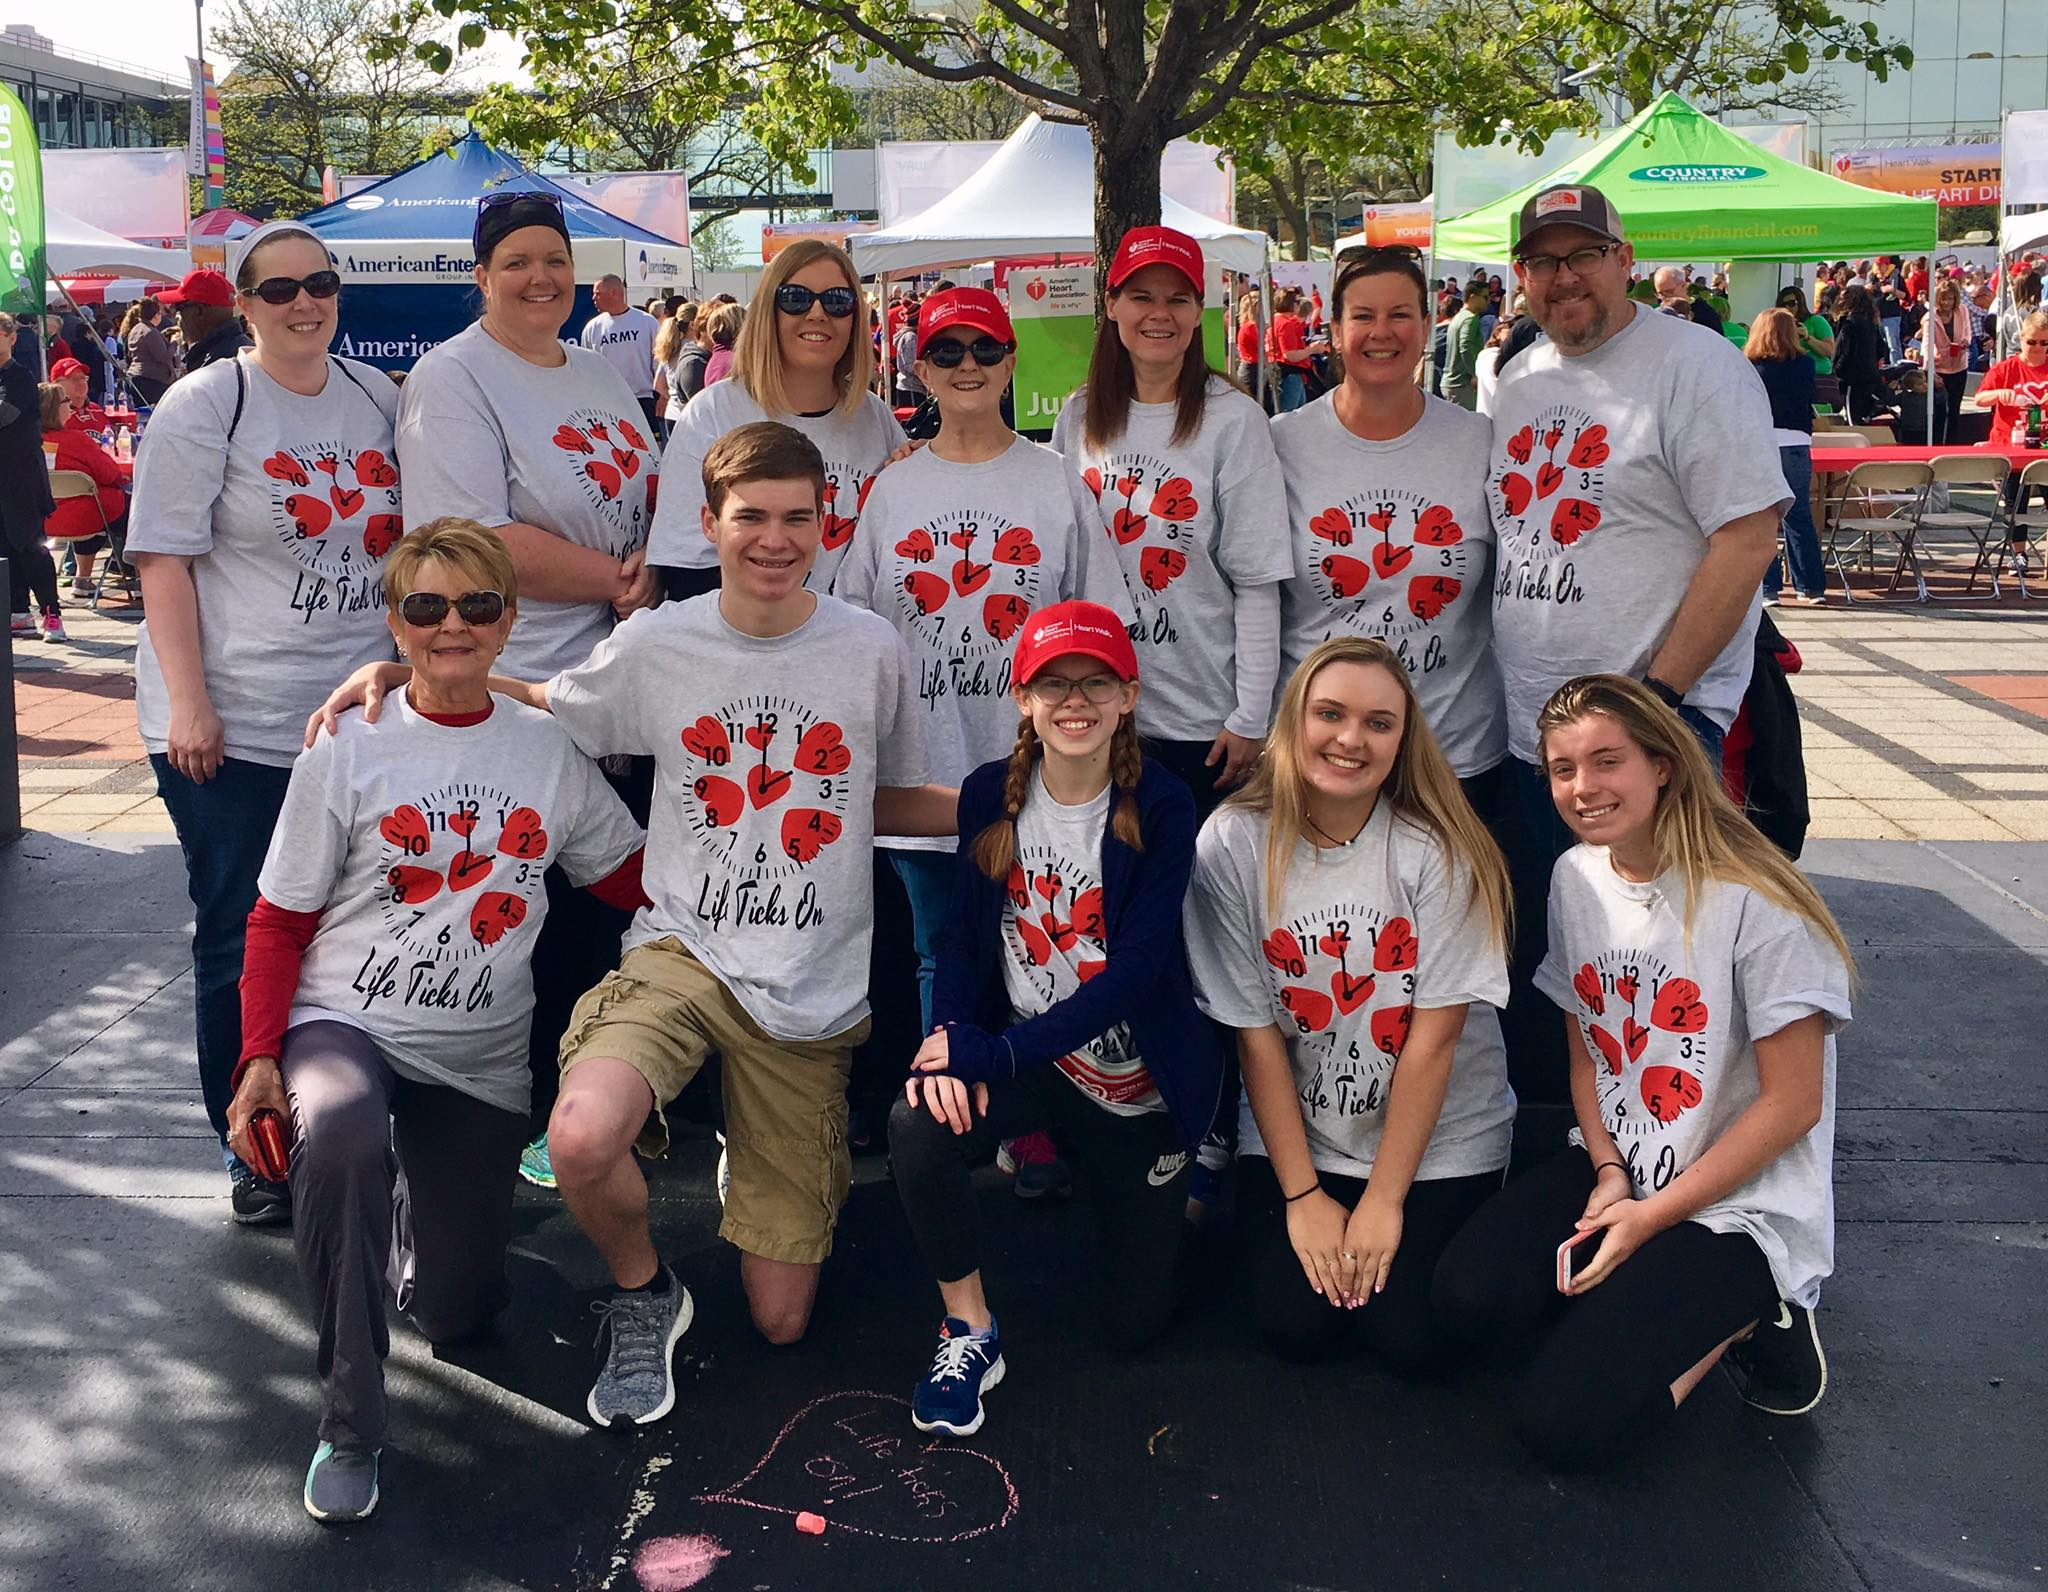 """Life Ticks On""  2017 Heart Walk team. Great family and friends who came out to support the cause and have a little fun!"